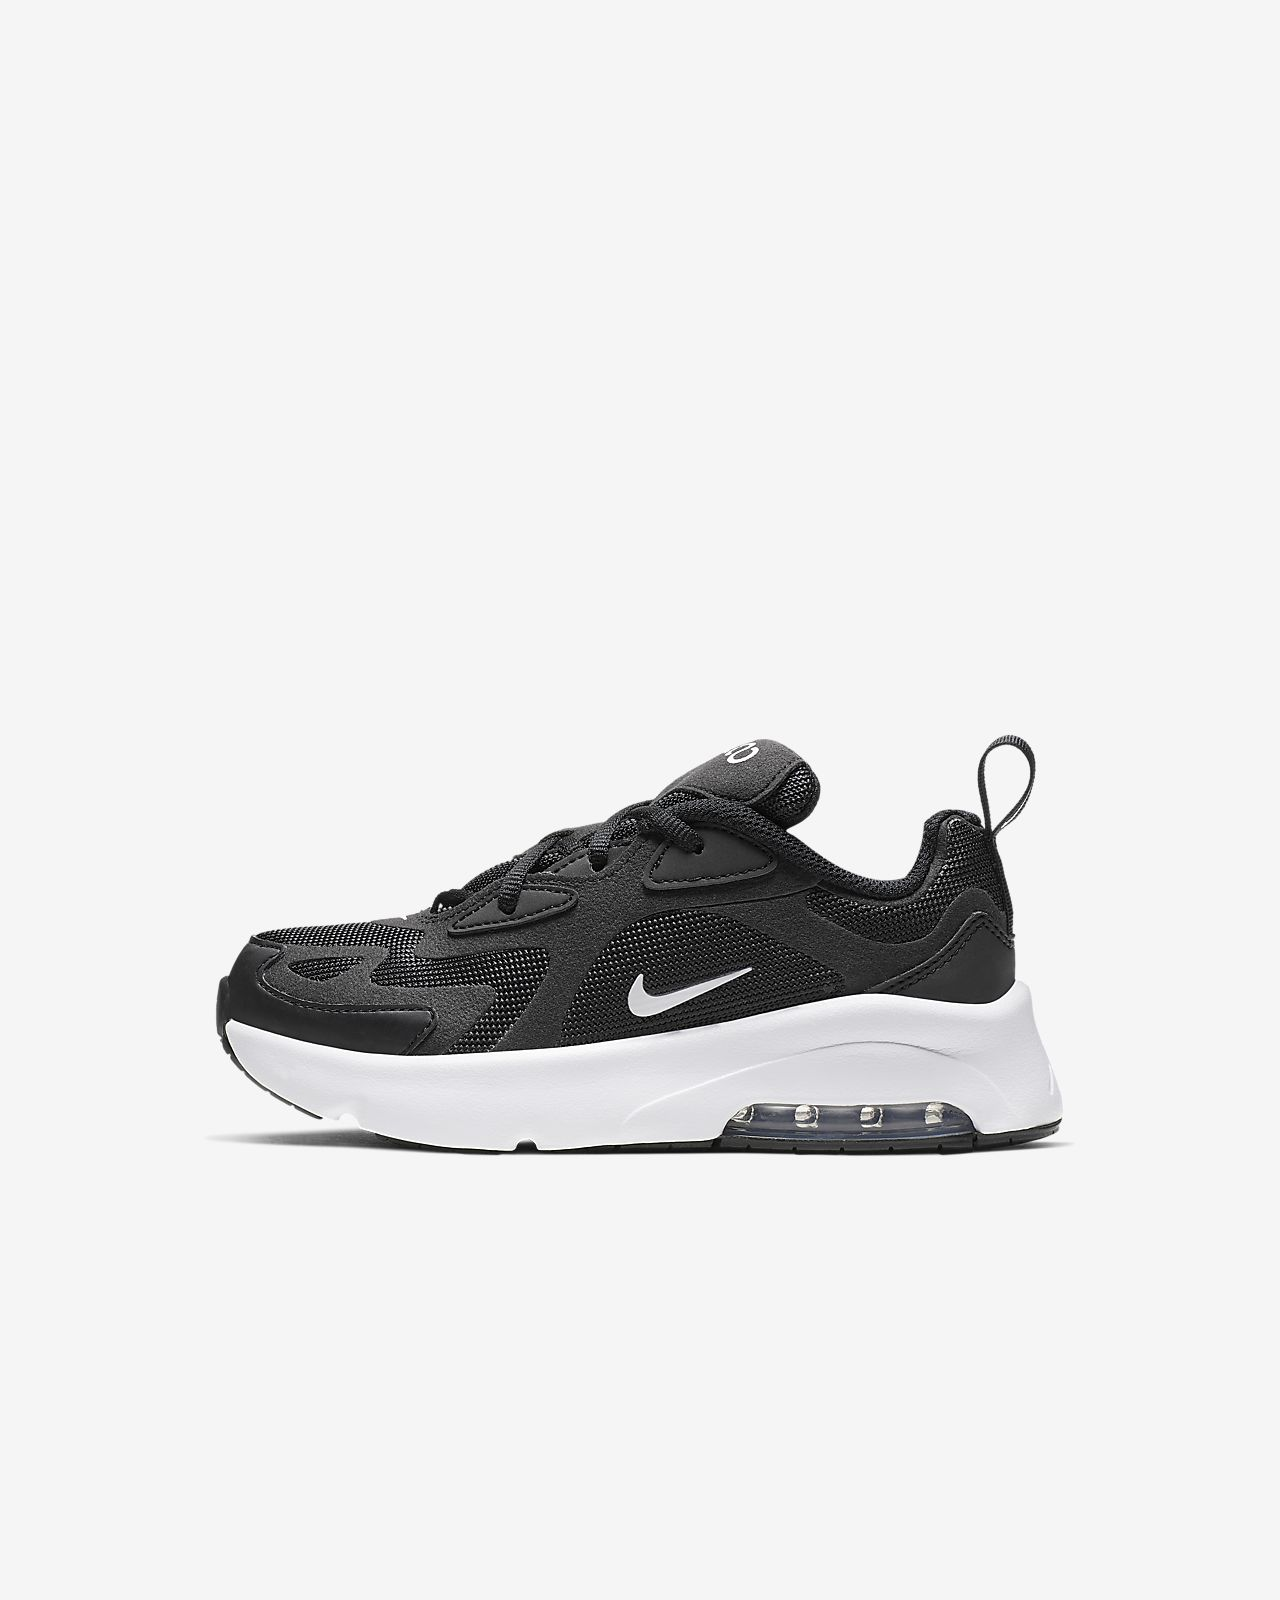 good selling classic fit factory price Nike Air Max 200 Schuh für jüngere Kinder